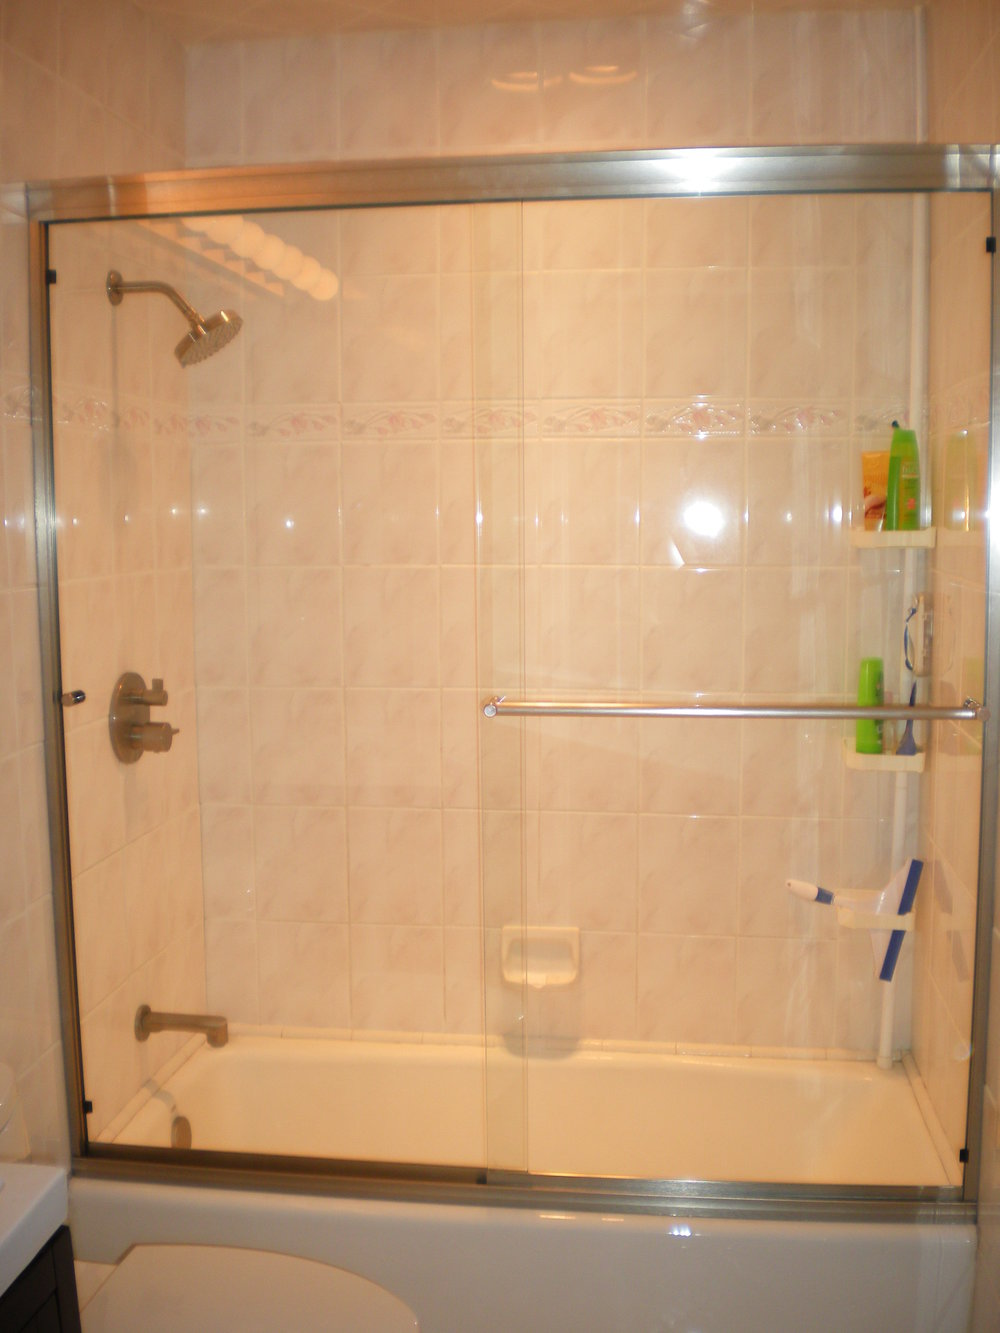 Shower-Doors-Residential-Photos-37.jpg